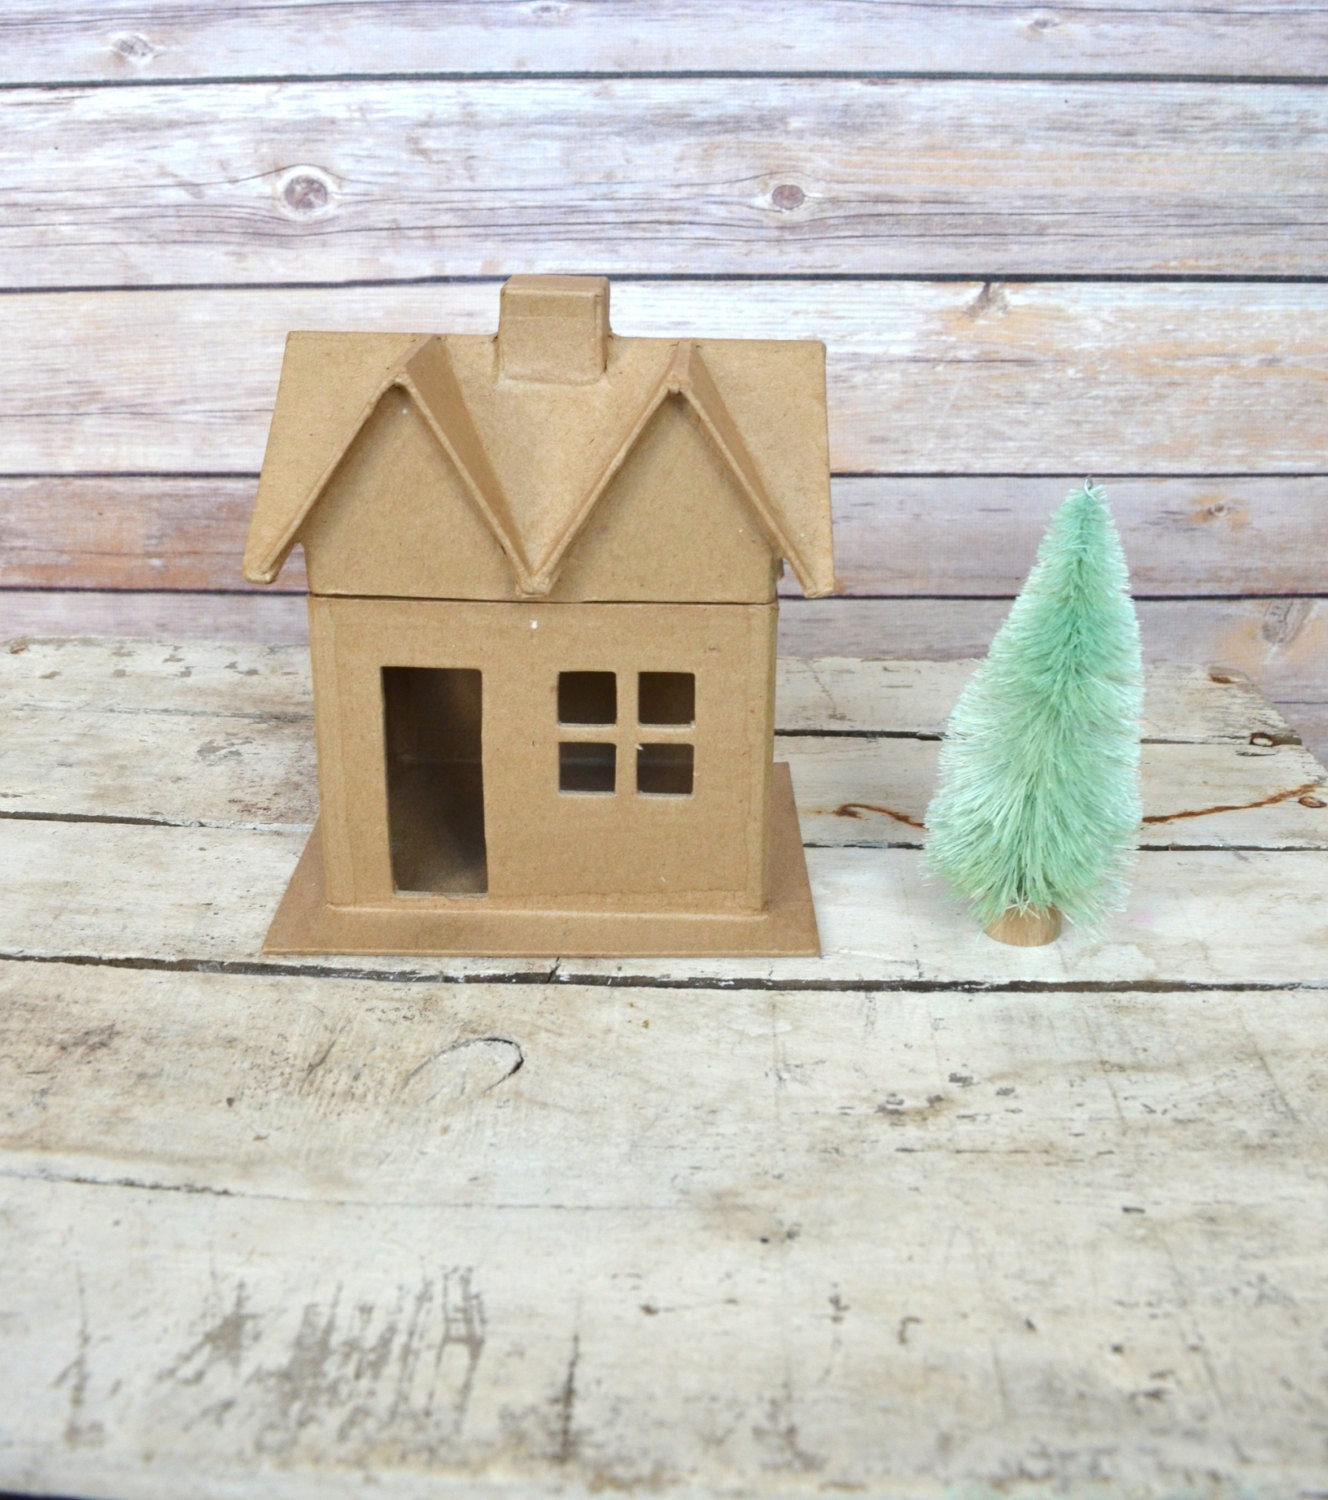 Diy Miniature Doll House Flat Packed Cardboard Kit Mini: Cardboard Mini House Ornament DIY Christmas Ready To Paint